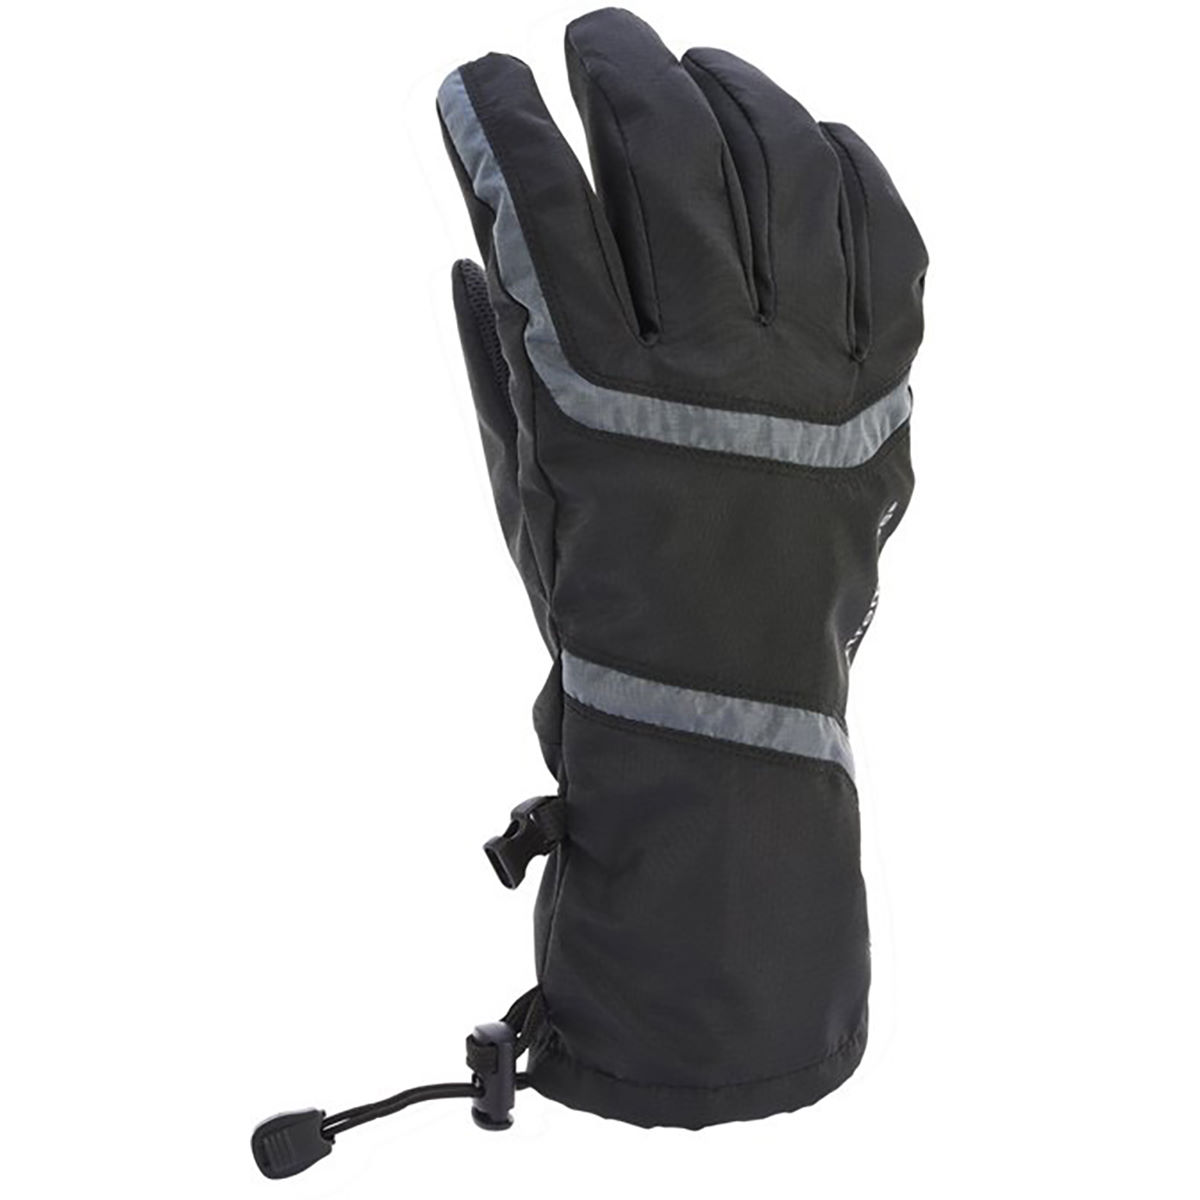 Extremities All Season Trekking Glove - Guantes